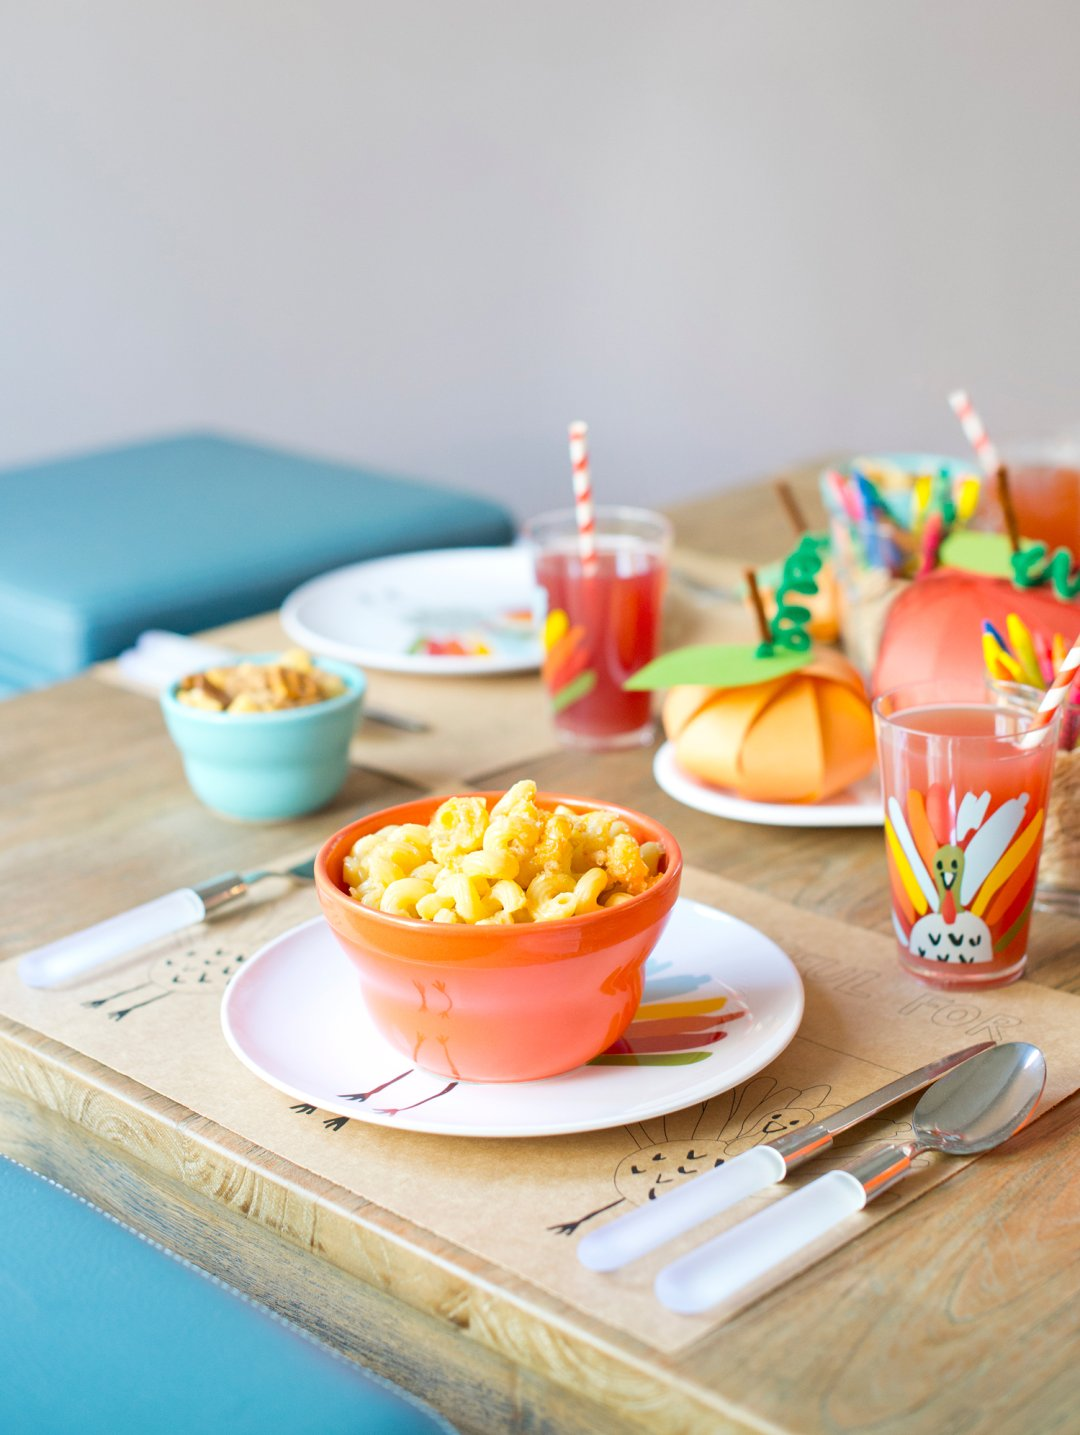 Kids Thanksgiving table place setting with a serving of mac and cheese in an orange bowl